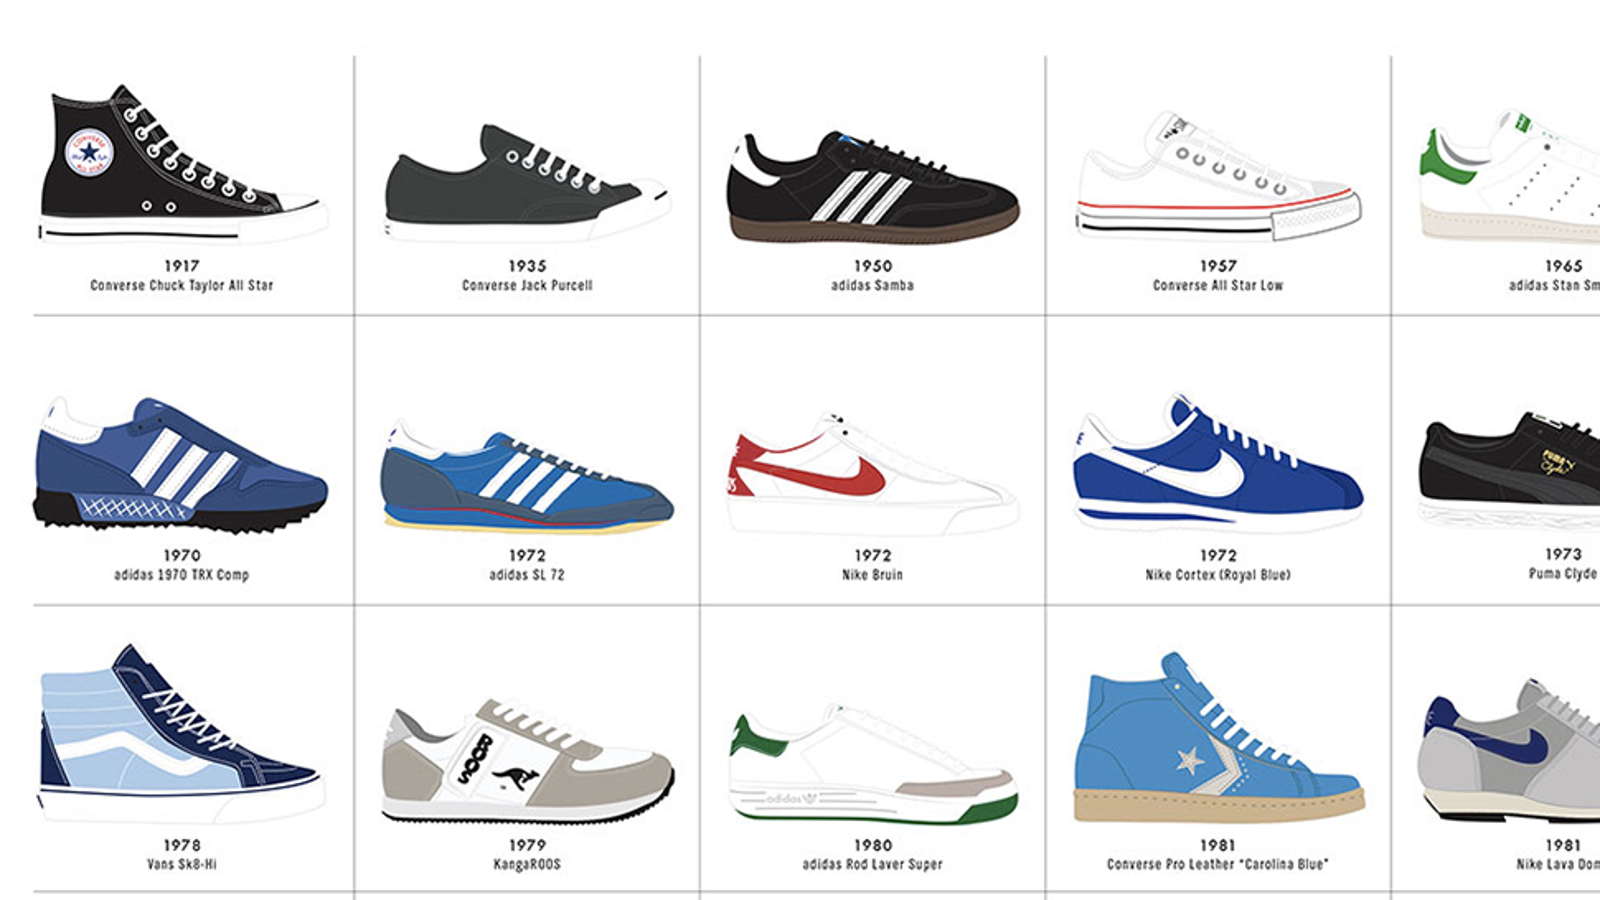 new concept f54a8 0f724 From Chucks to Dunks 100 Years of Sneaker Design Visualized